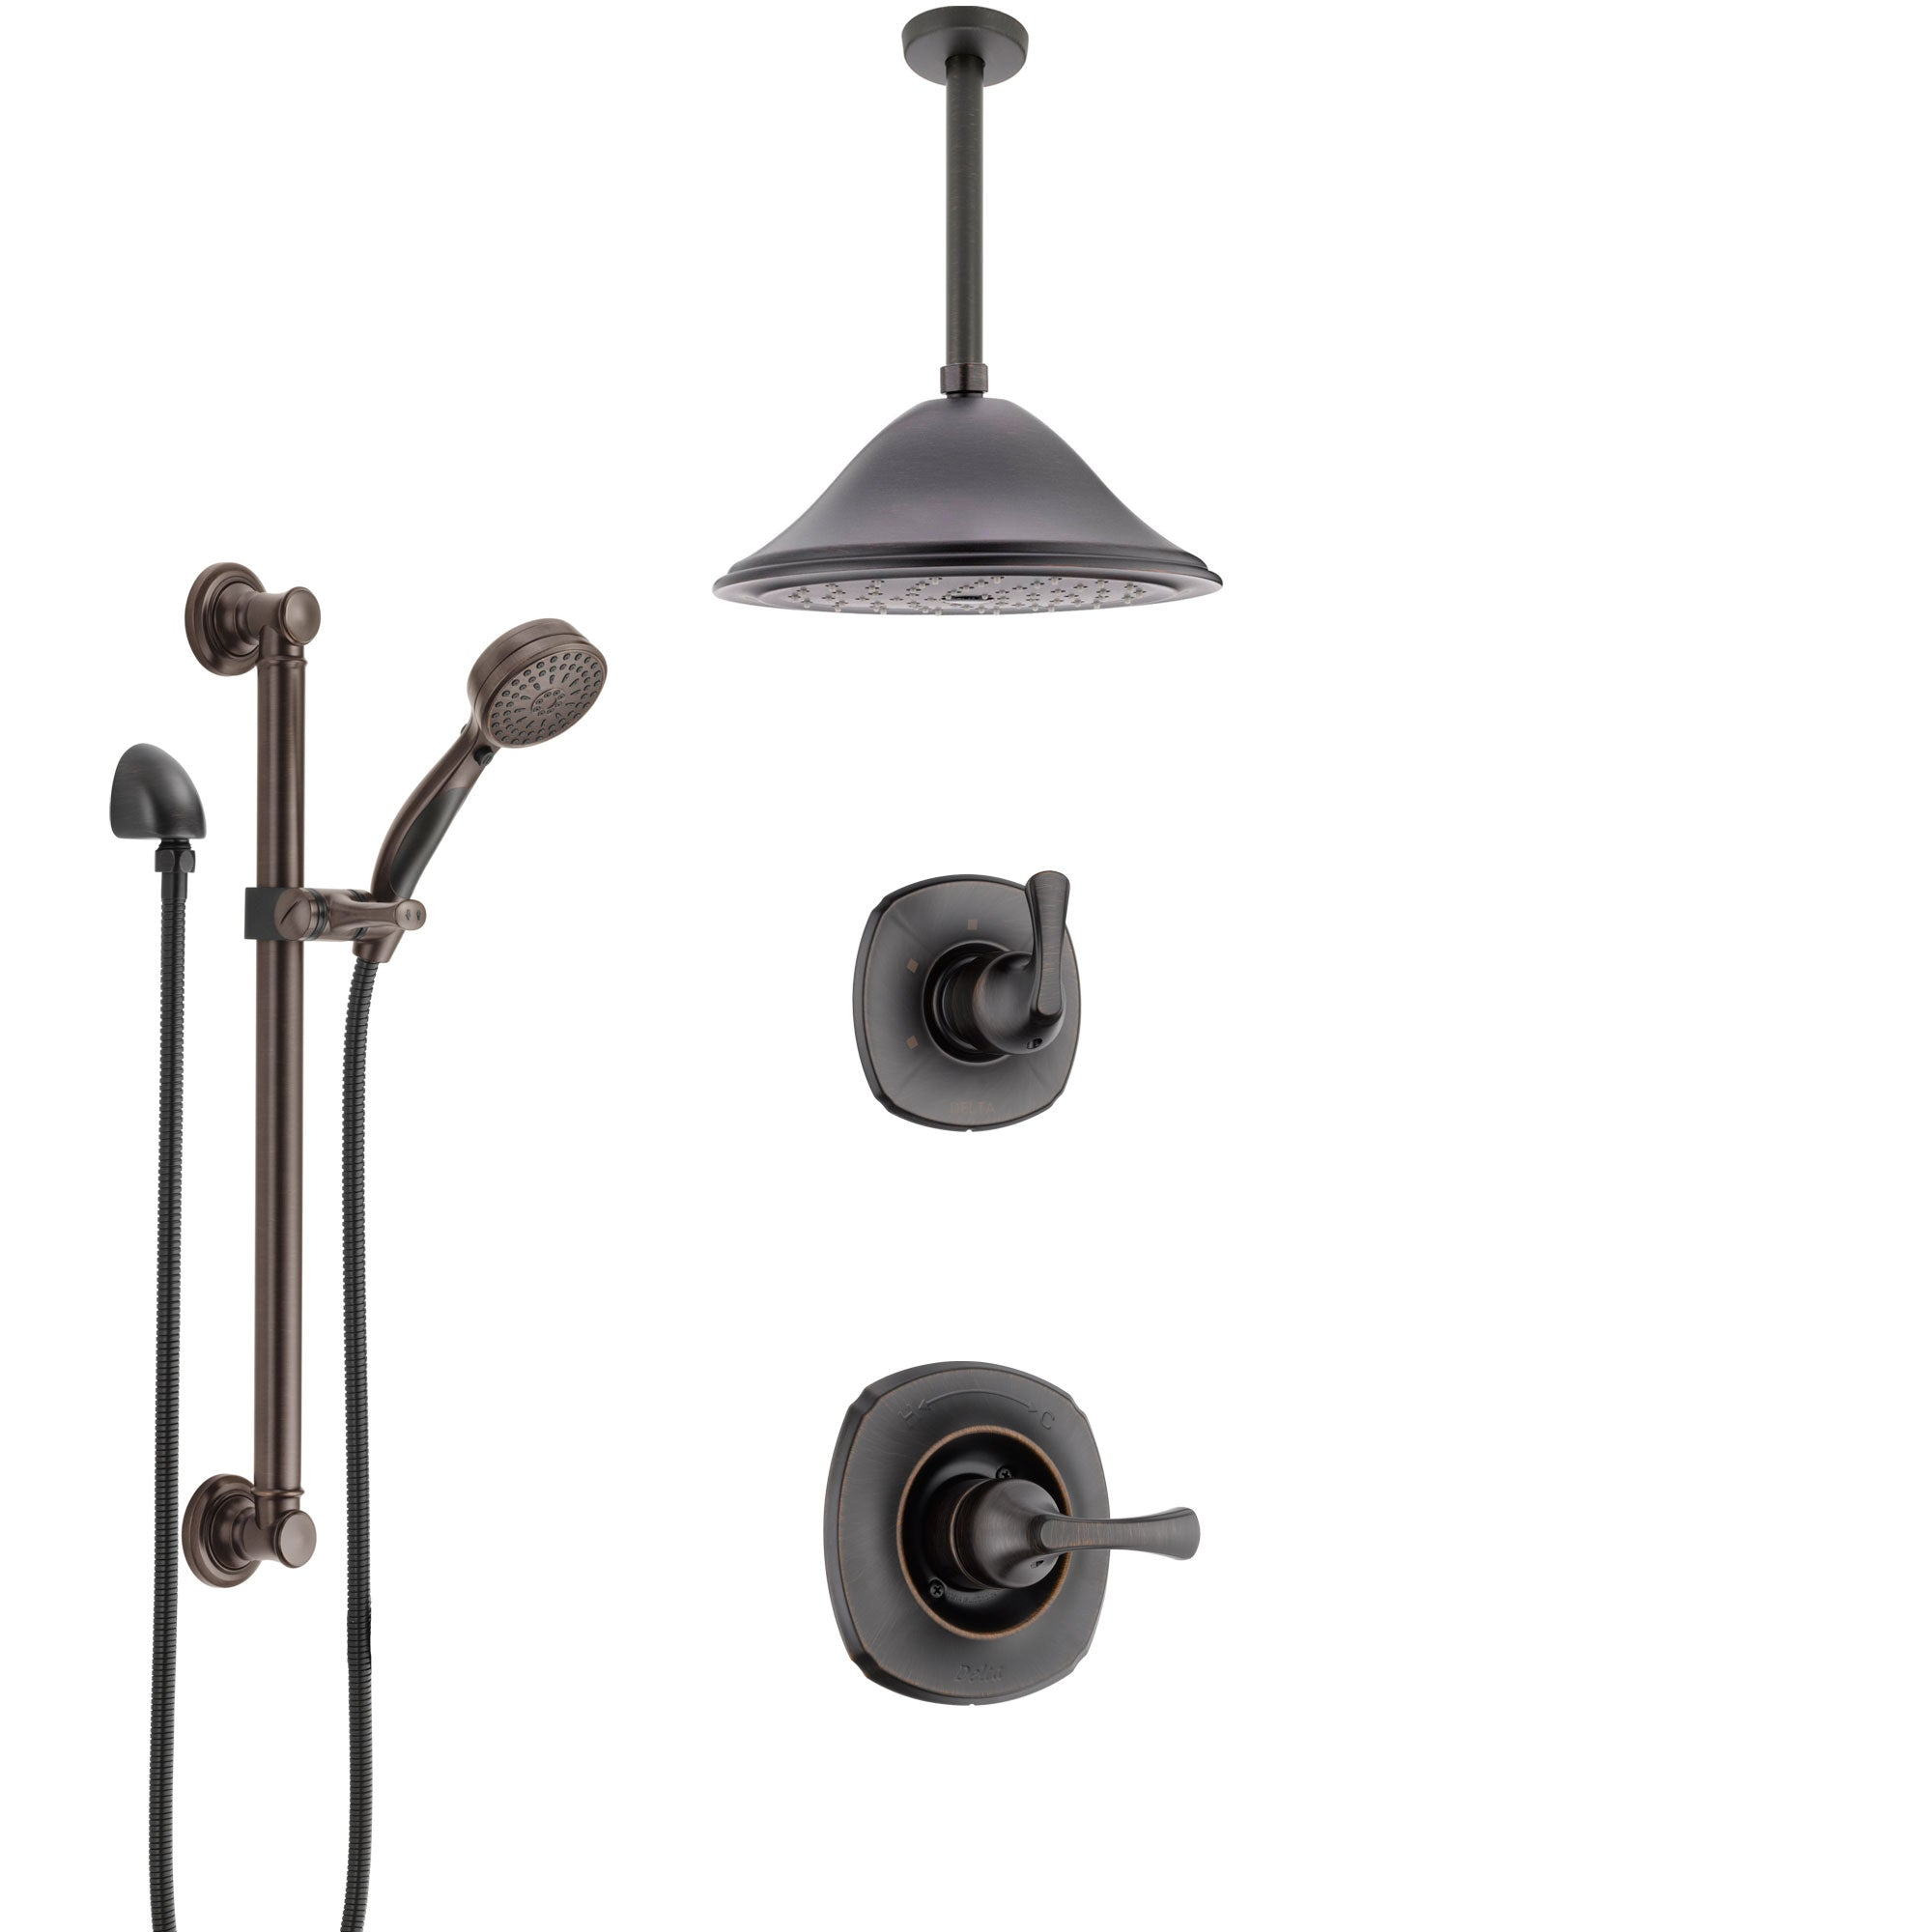 Delta Addison Venetian Bronze Shower System with Control Handle, 3-Setting Diverter, Ceiling Mount Showerhead, and Hand Shower with Grab Bar SS1492RB4